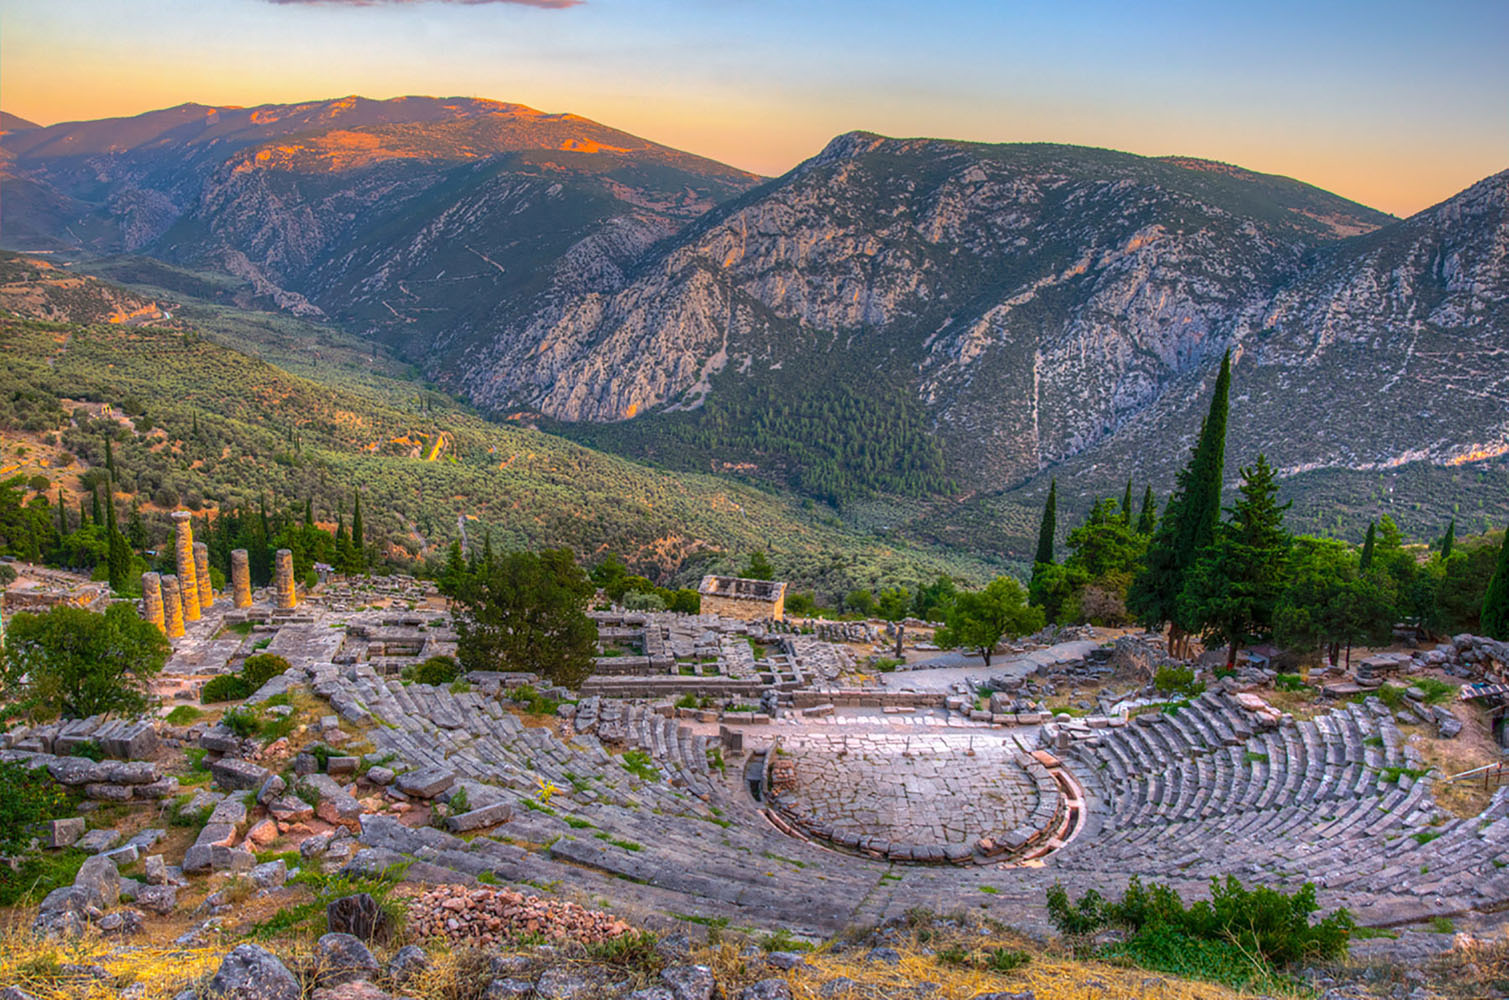 Sunset view of ruins of theatre at ancient Delphi, Greece